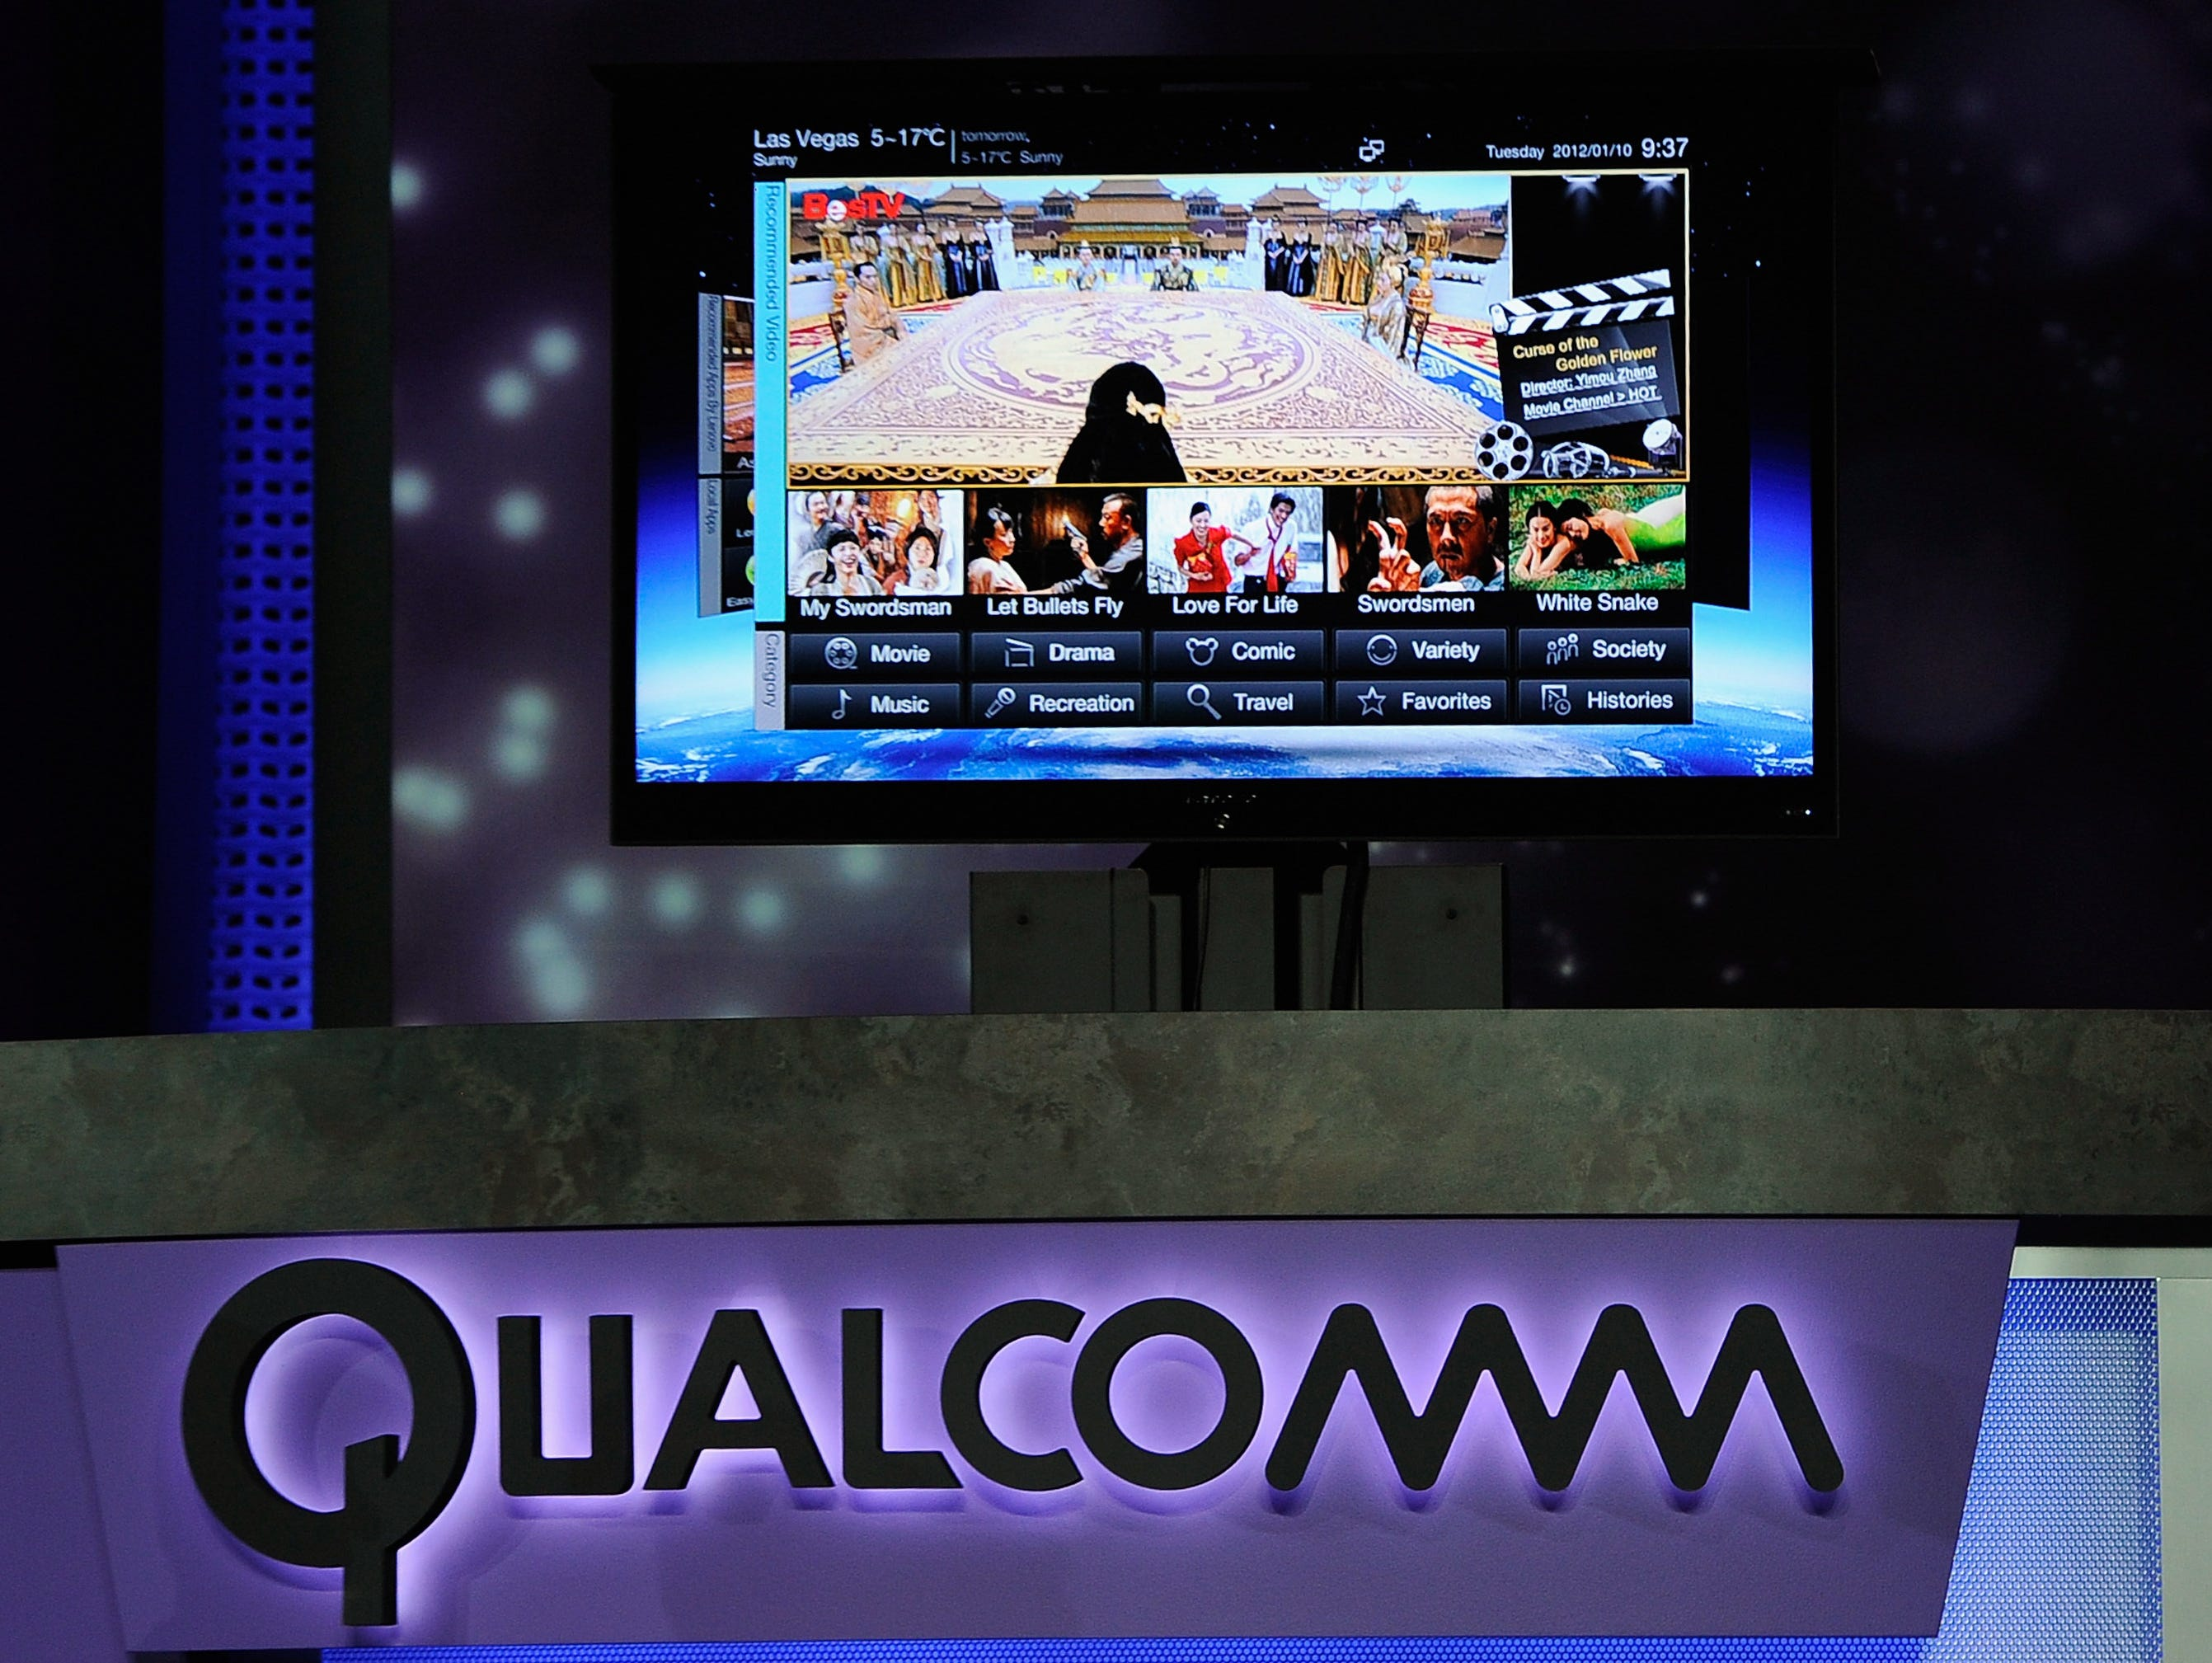 The new Lenovo television is shown during a presentation by Qualcomm at CES in 2012.